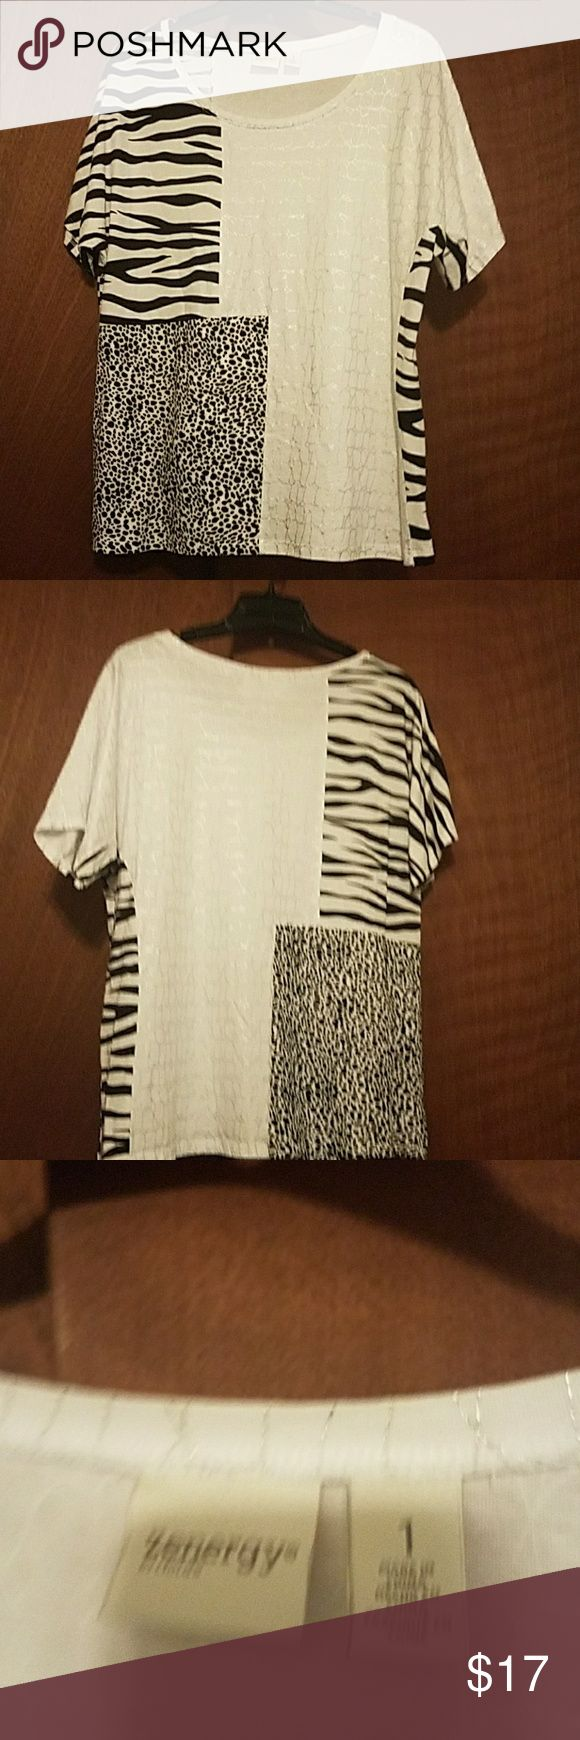 Zenergy by Chico's fun top Very cute and chic Patchwork animal print short sleeve top buys energy. Their size 1 which is a size 8. Excellent used condition. This would be such a cute top to wear for date night! zenergy by Chico's Tops Blouses